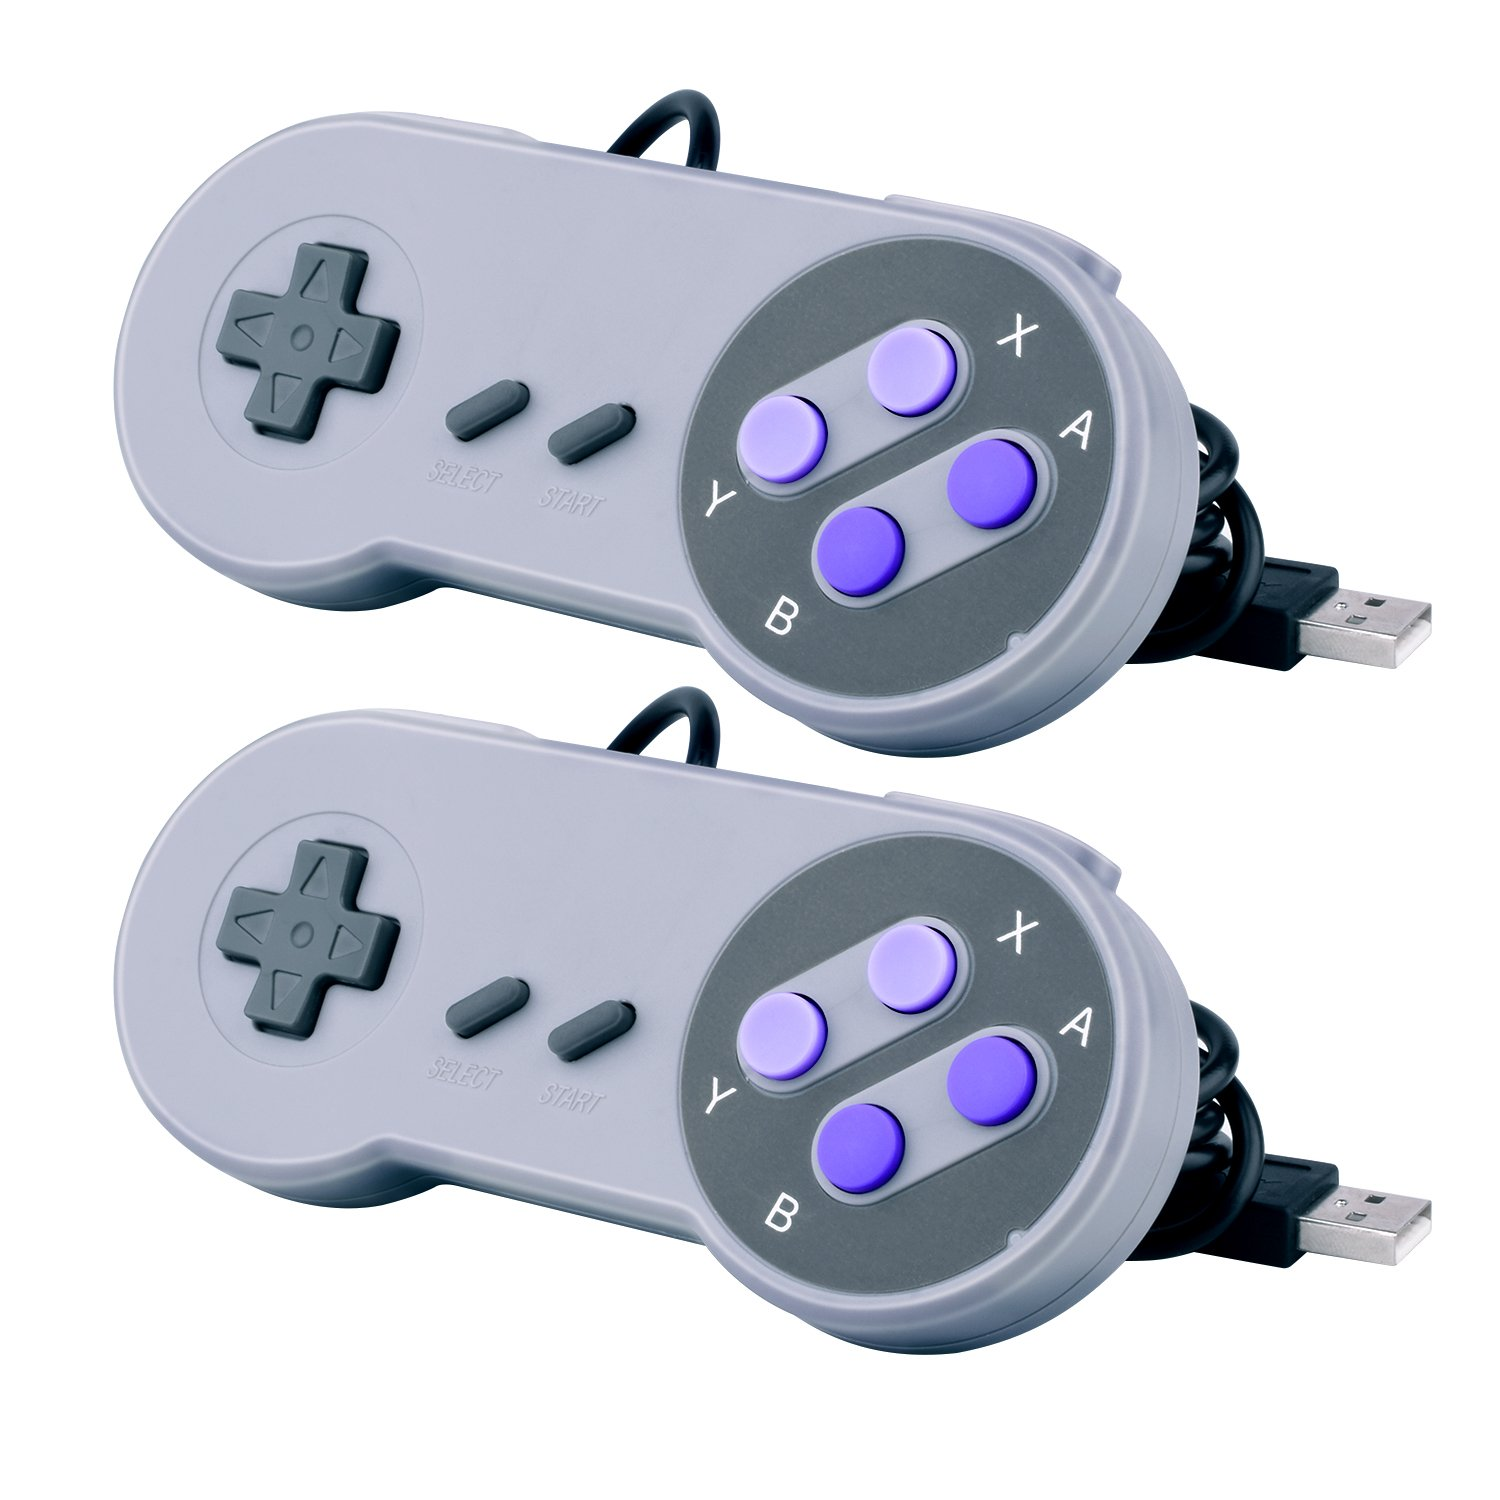 Quimat Retro Super klassisches Videospiel 2 x USB fü r SNES Raspberry Pi Gamepad/Controller PC /Windows Mac QR06 QR06-UK